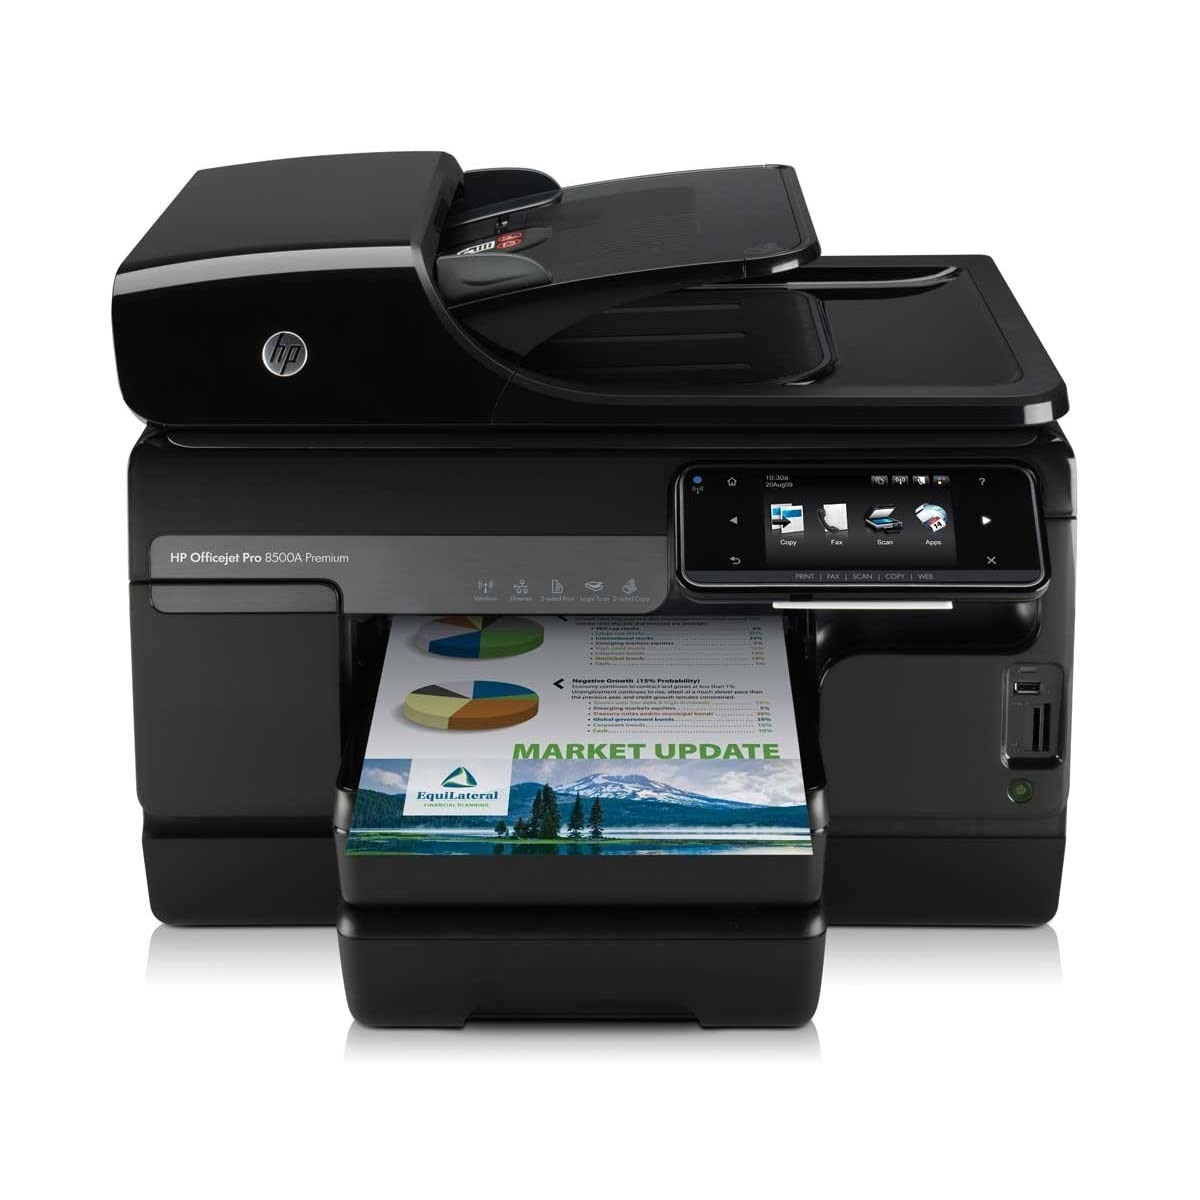 HP Officejet Pro 8500A Premium Wireless e-All-in-One